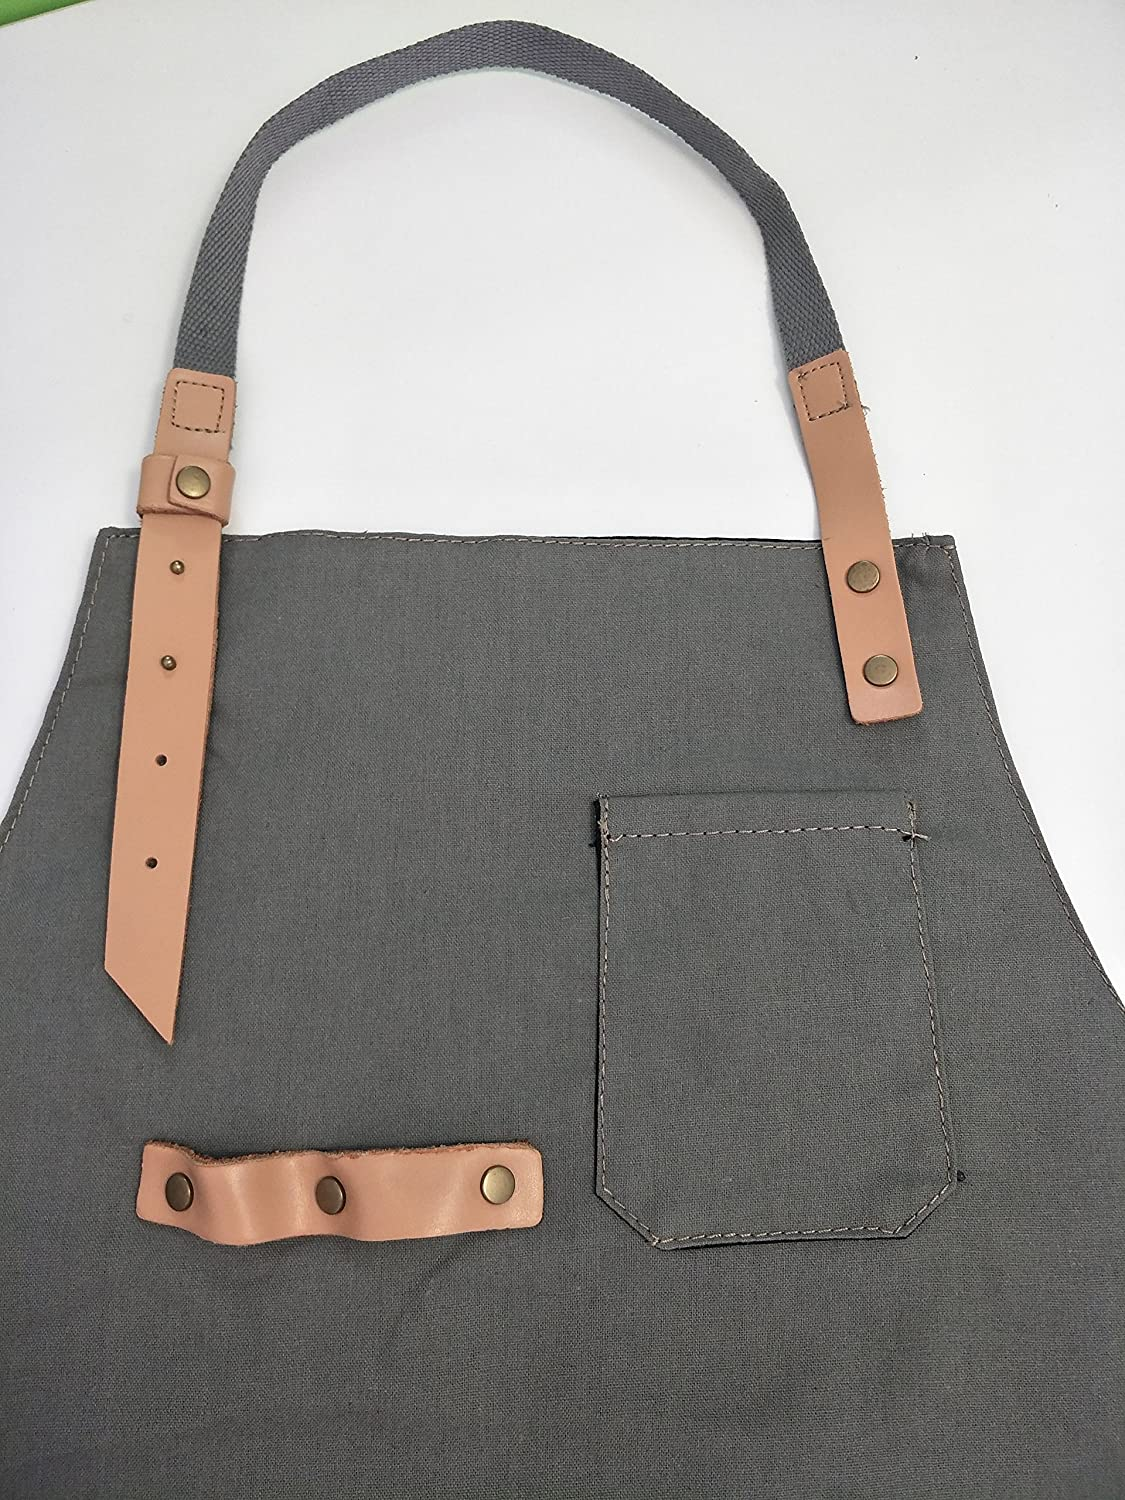 Luchuan 100/% Cotton Adjustable Work Aprons Chef Bibs Work Apron With Pockets for Women /& Man Gray